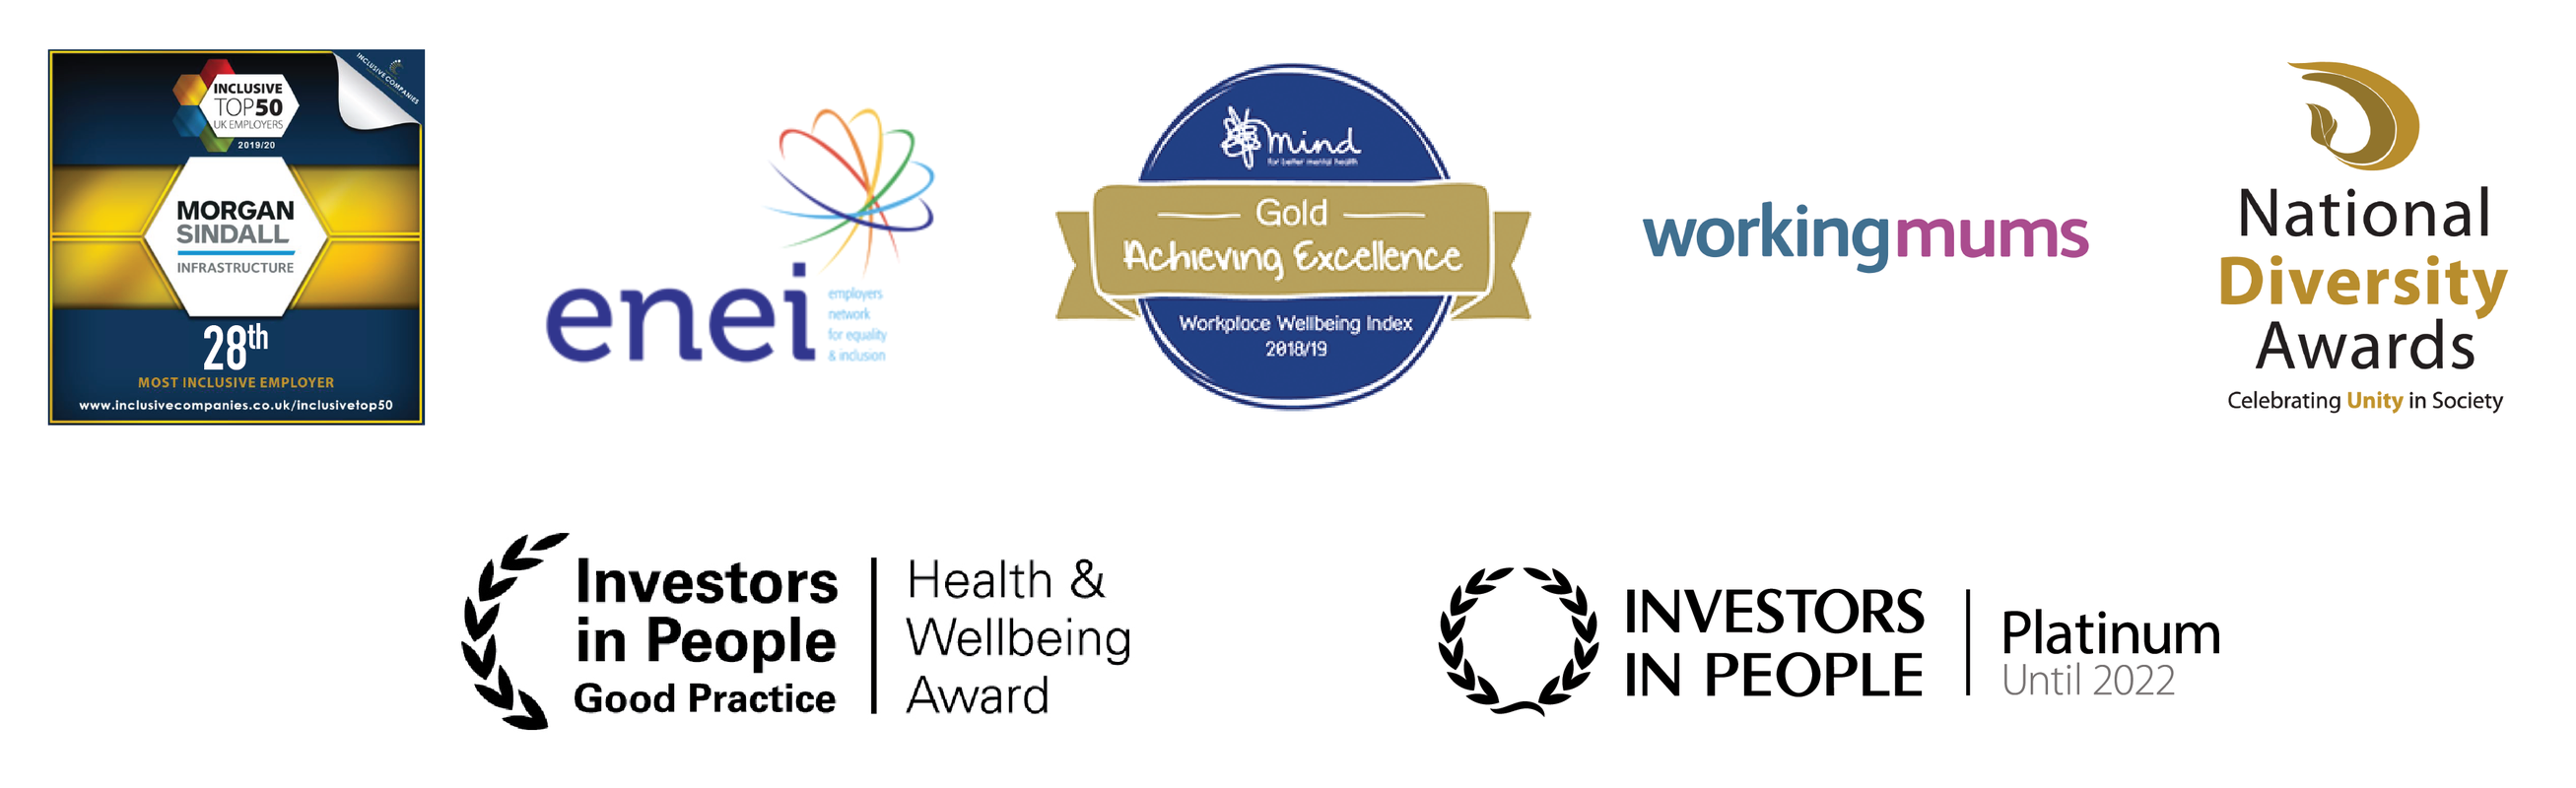 Logos for awards that we have won as a company. These include Most Inclusive Employers (28th place), Employers Network for Equality and Inclusion, Mind Workplace Wellbeing Gold, Working Mums, National Diversity Awards, Investors in People